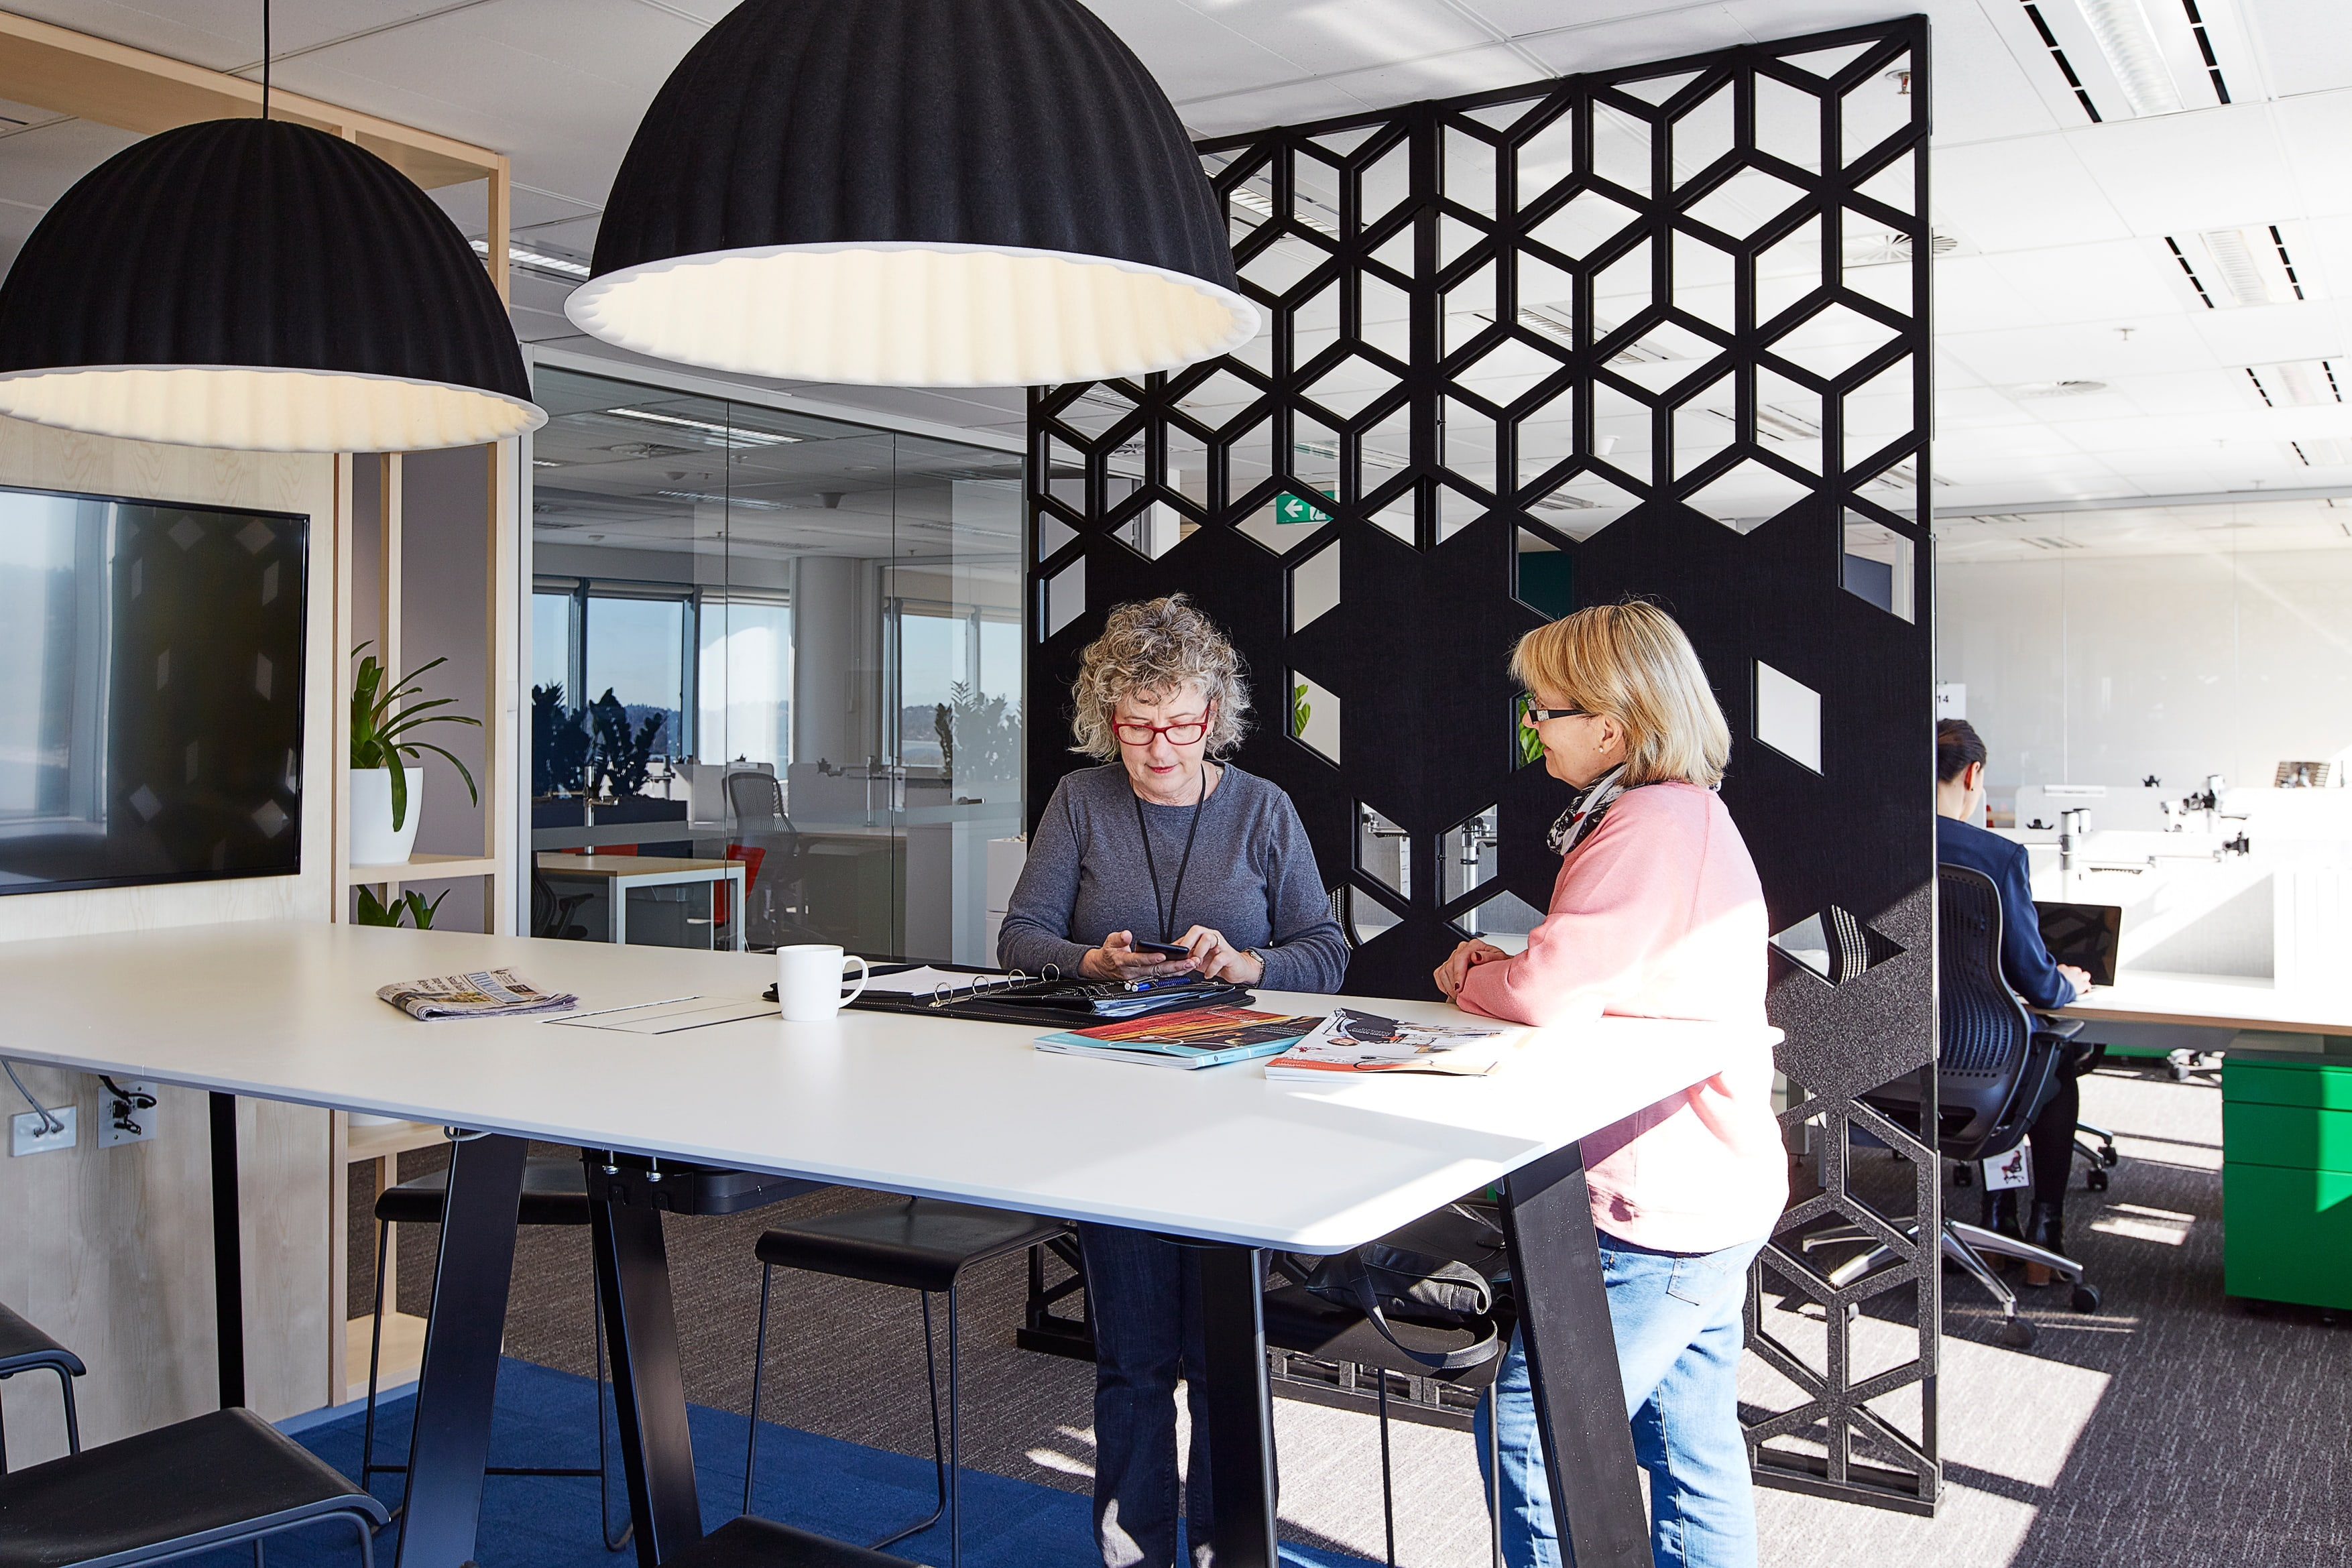 Hanson Parramatta Fitout Tenant Representation, Interior Design, Project & Construction Management Project Image 5 by PCG